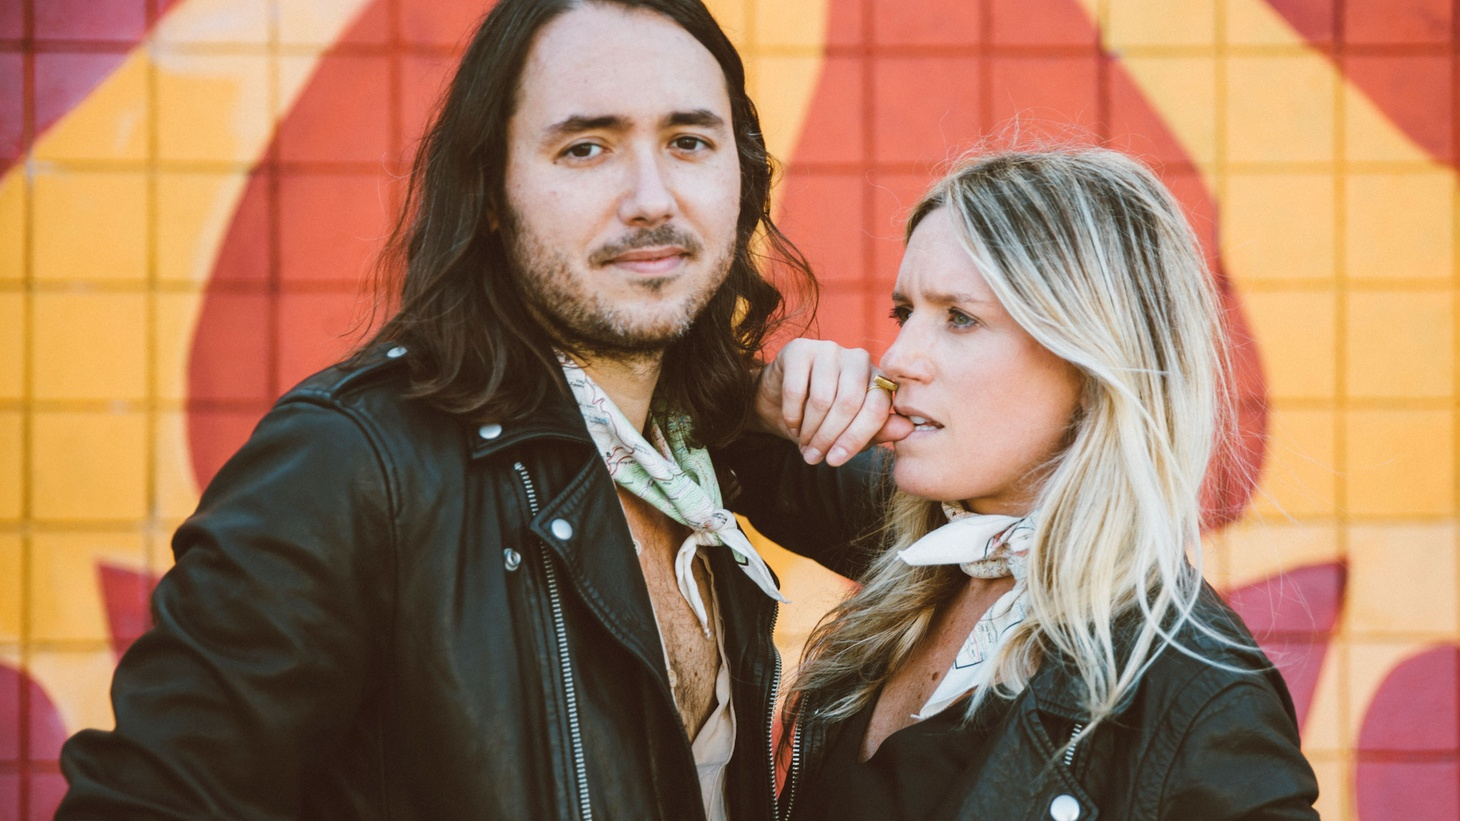 Los Angeles-based alt-folk duo Freedom Fry has a new EP featuring Strange Attraction.